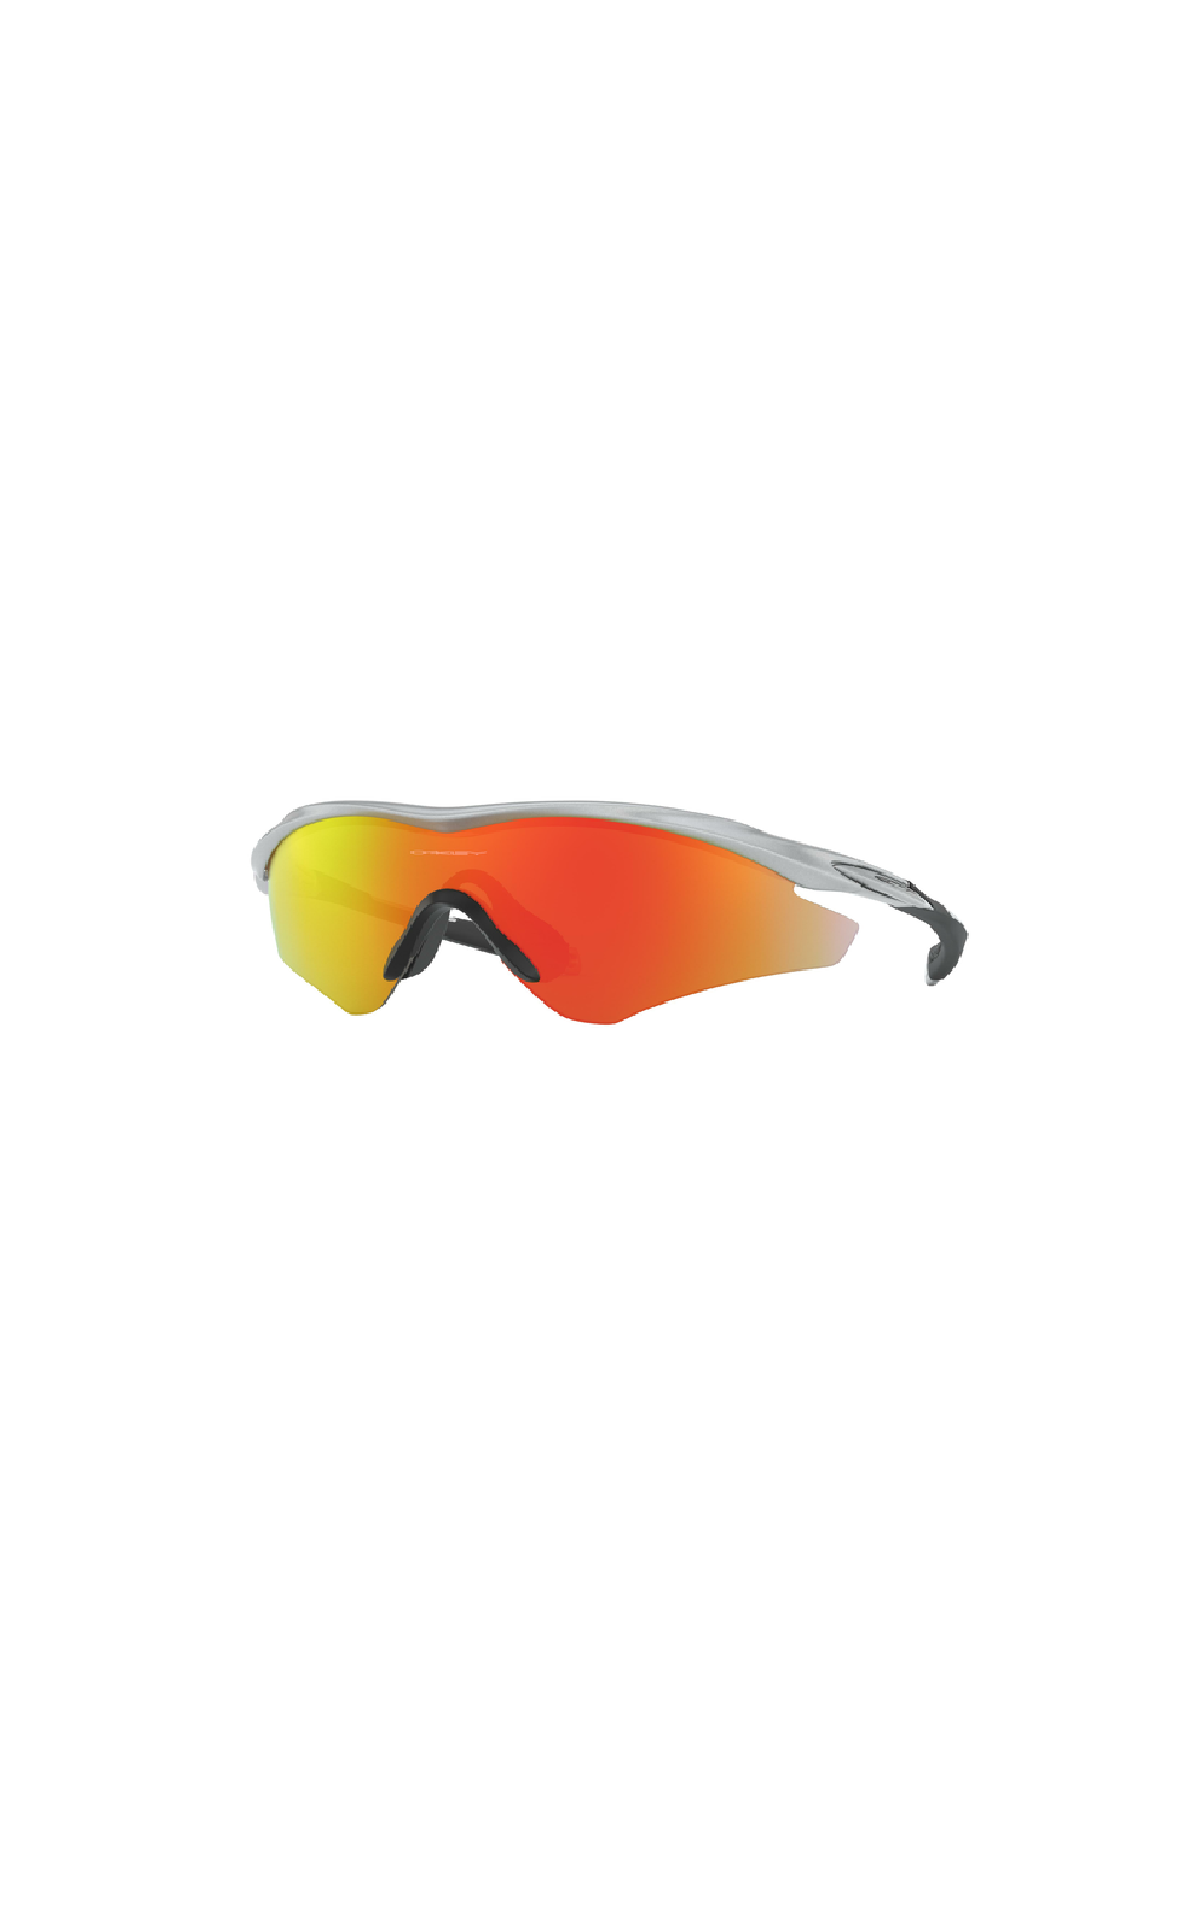 Orange Oakley sunglasses Sunglass Hut